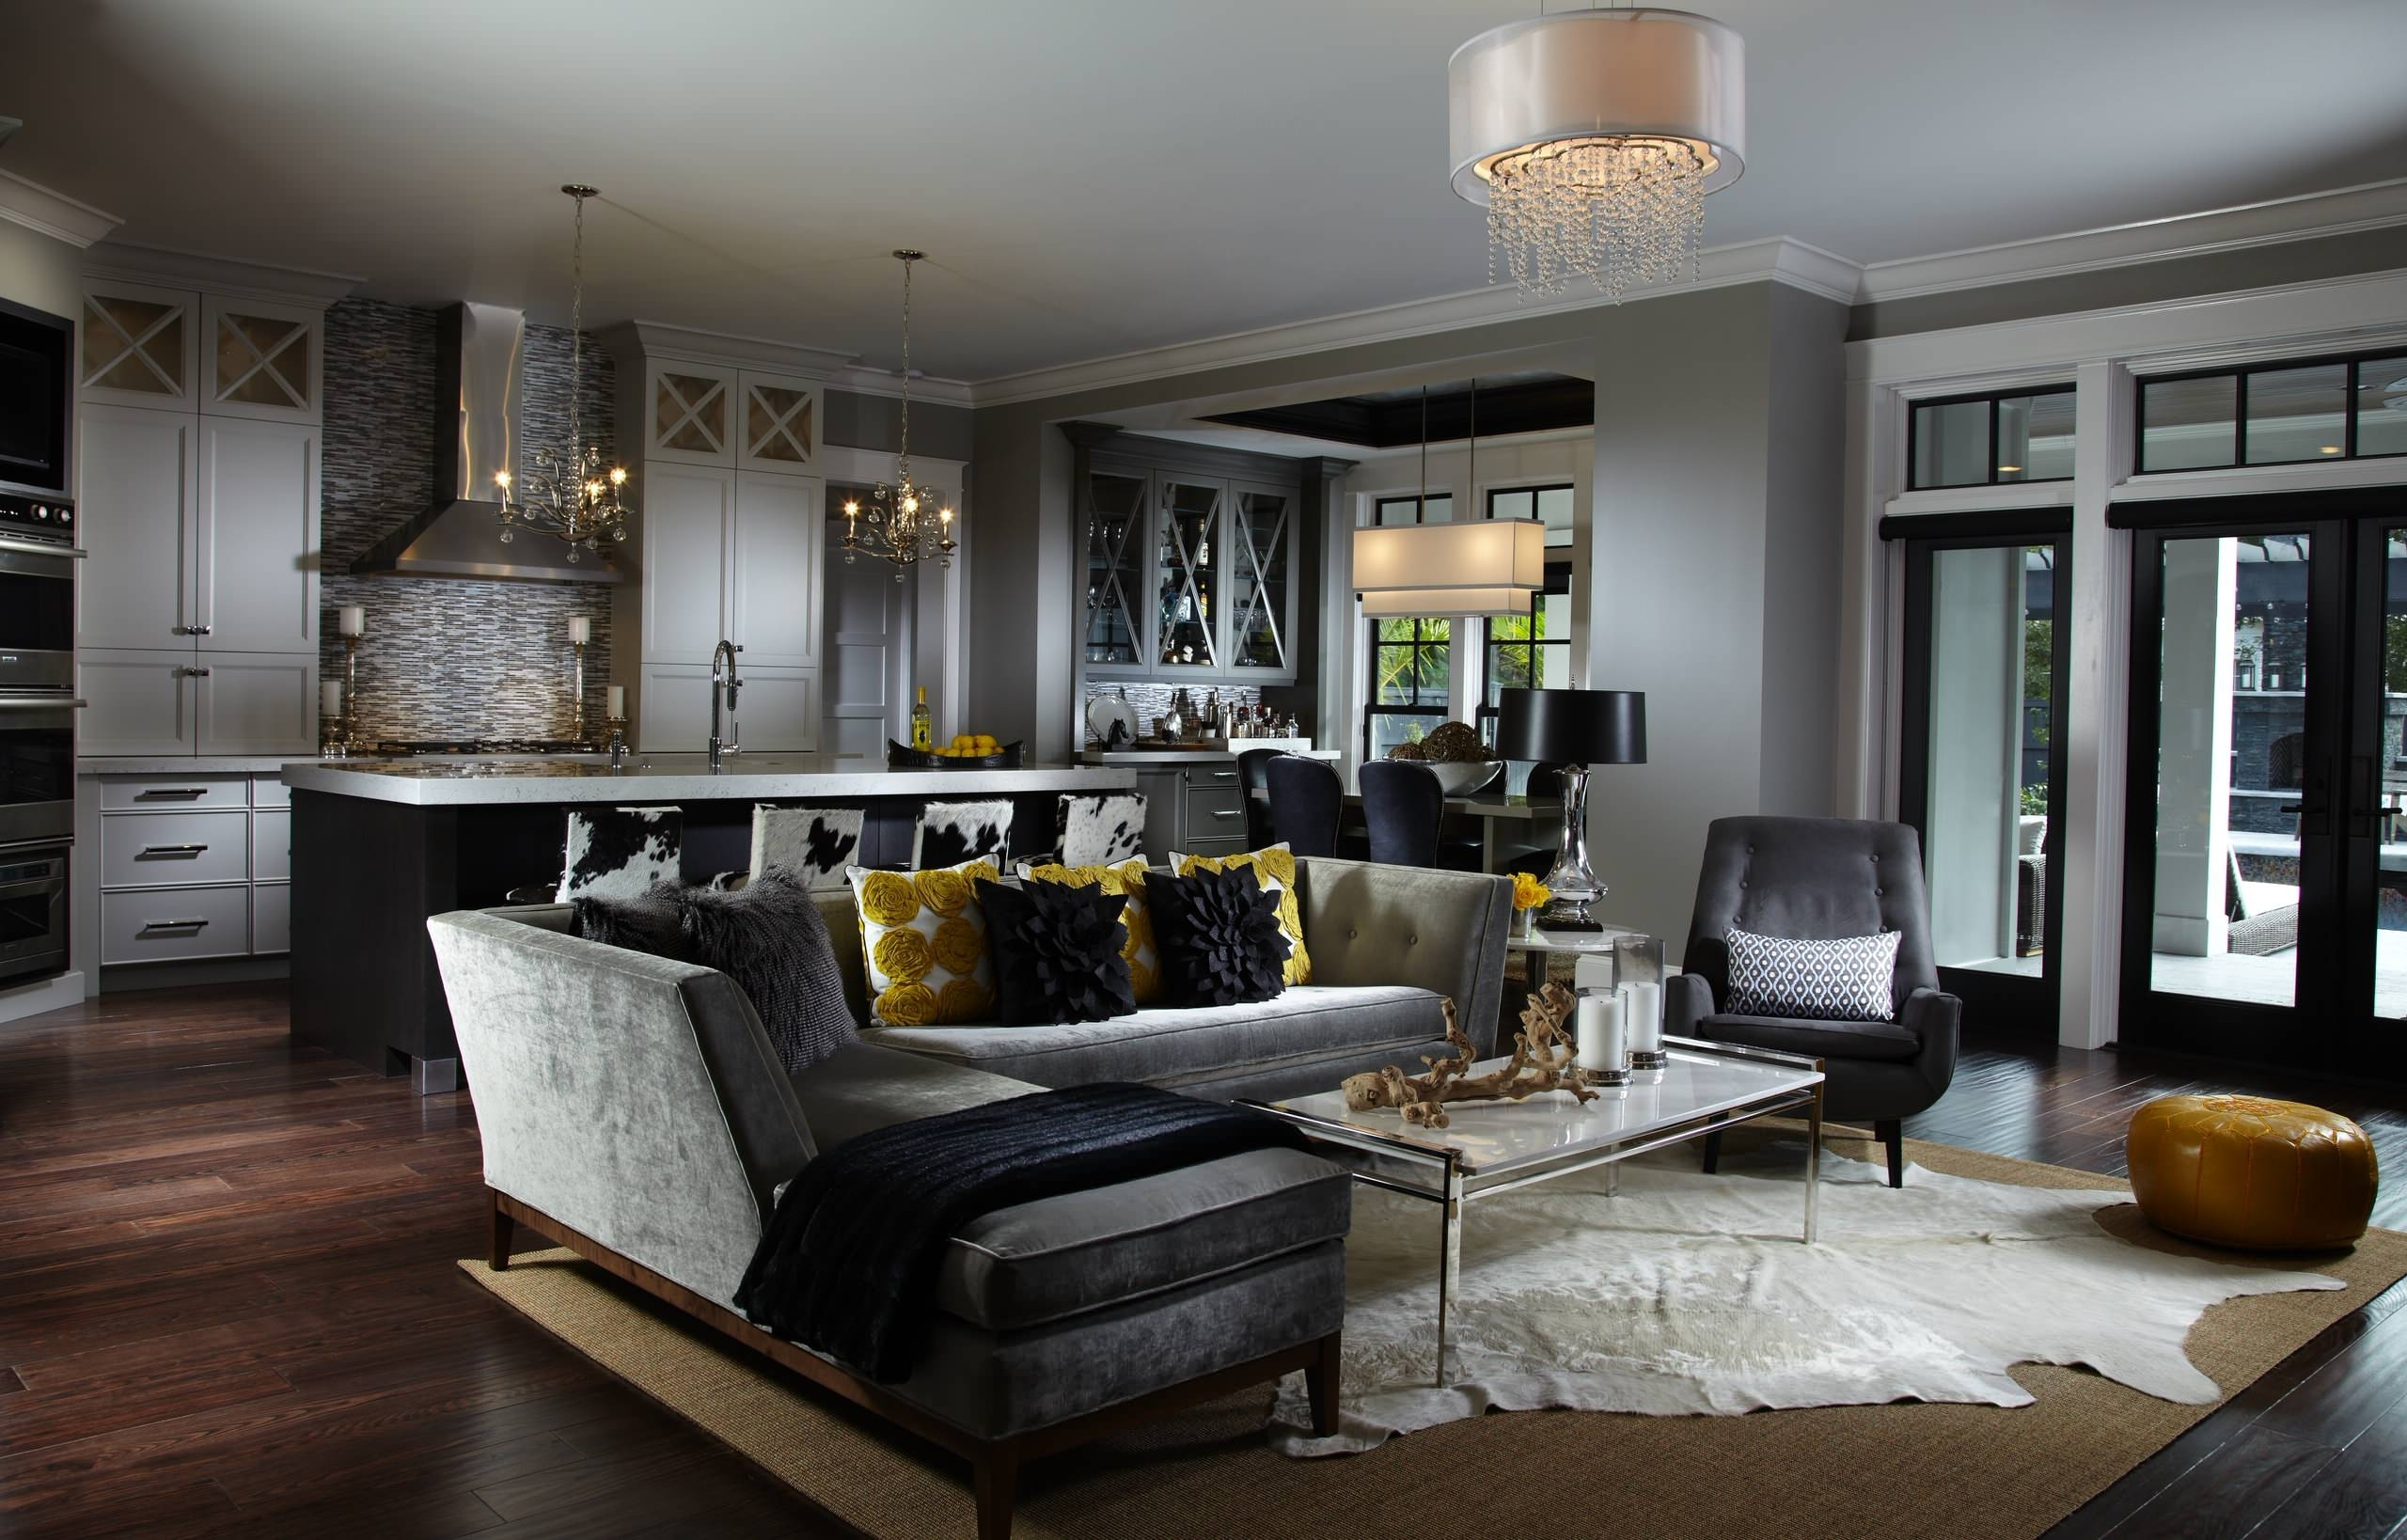 Black Leather Sofa Ideas | Houzz 10+ Living Room Decorating Black Leather Couch Inspirations